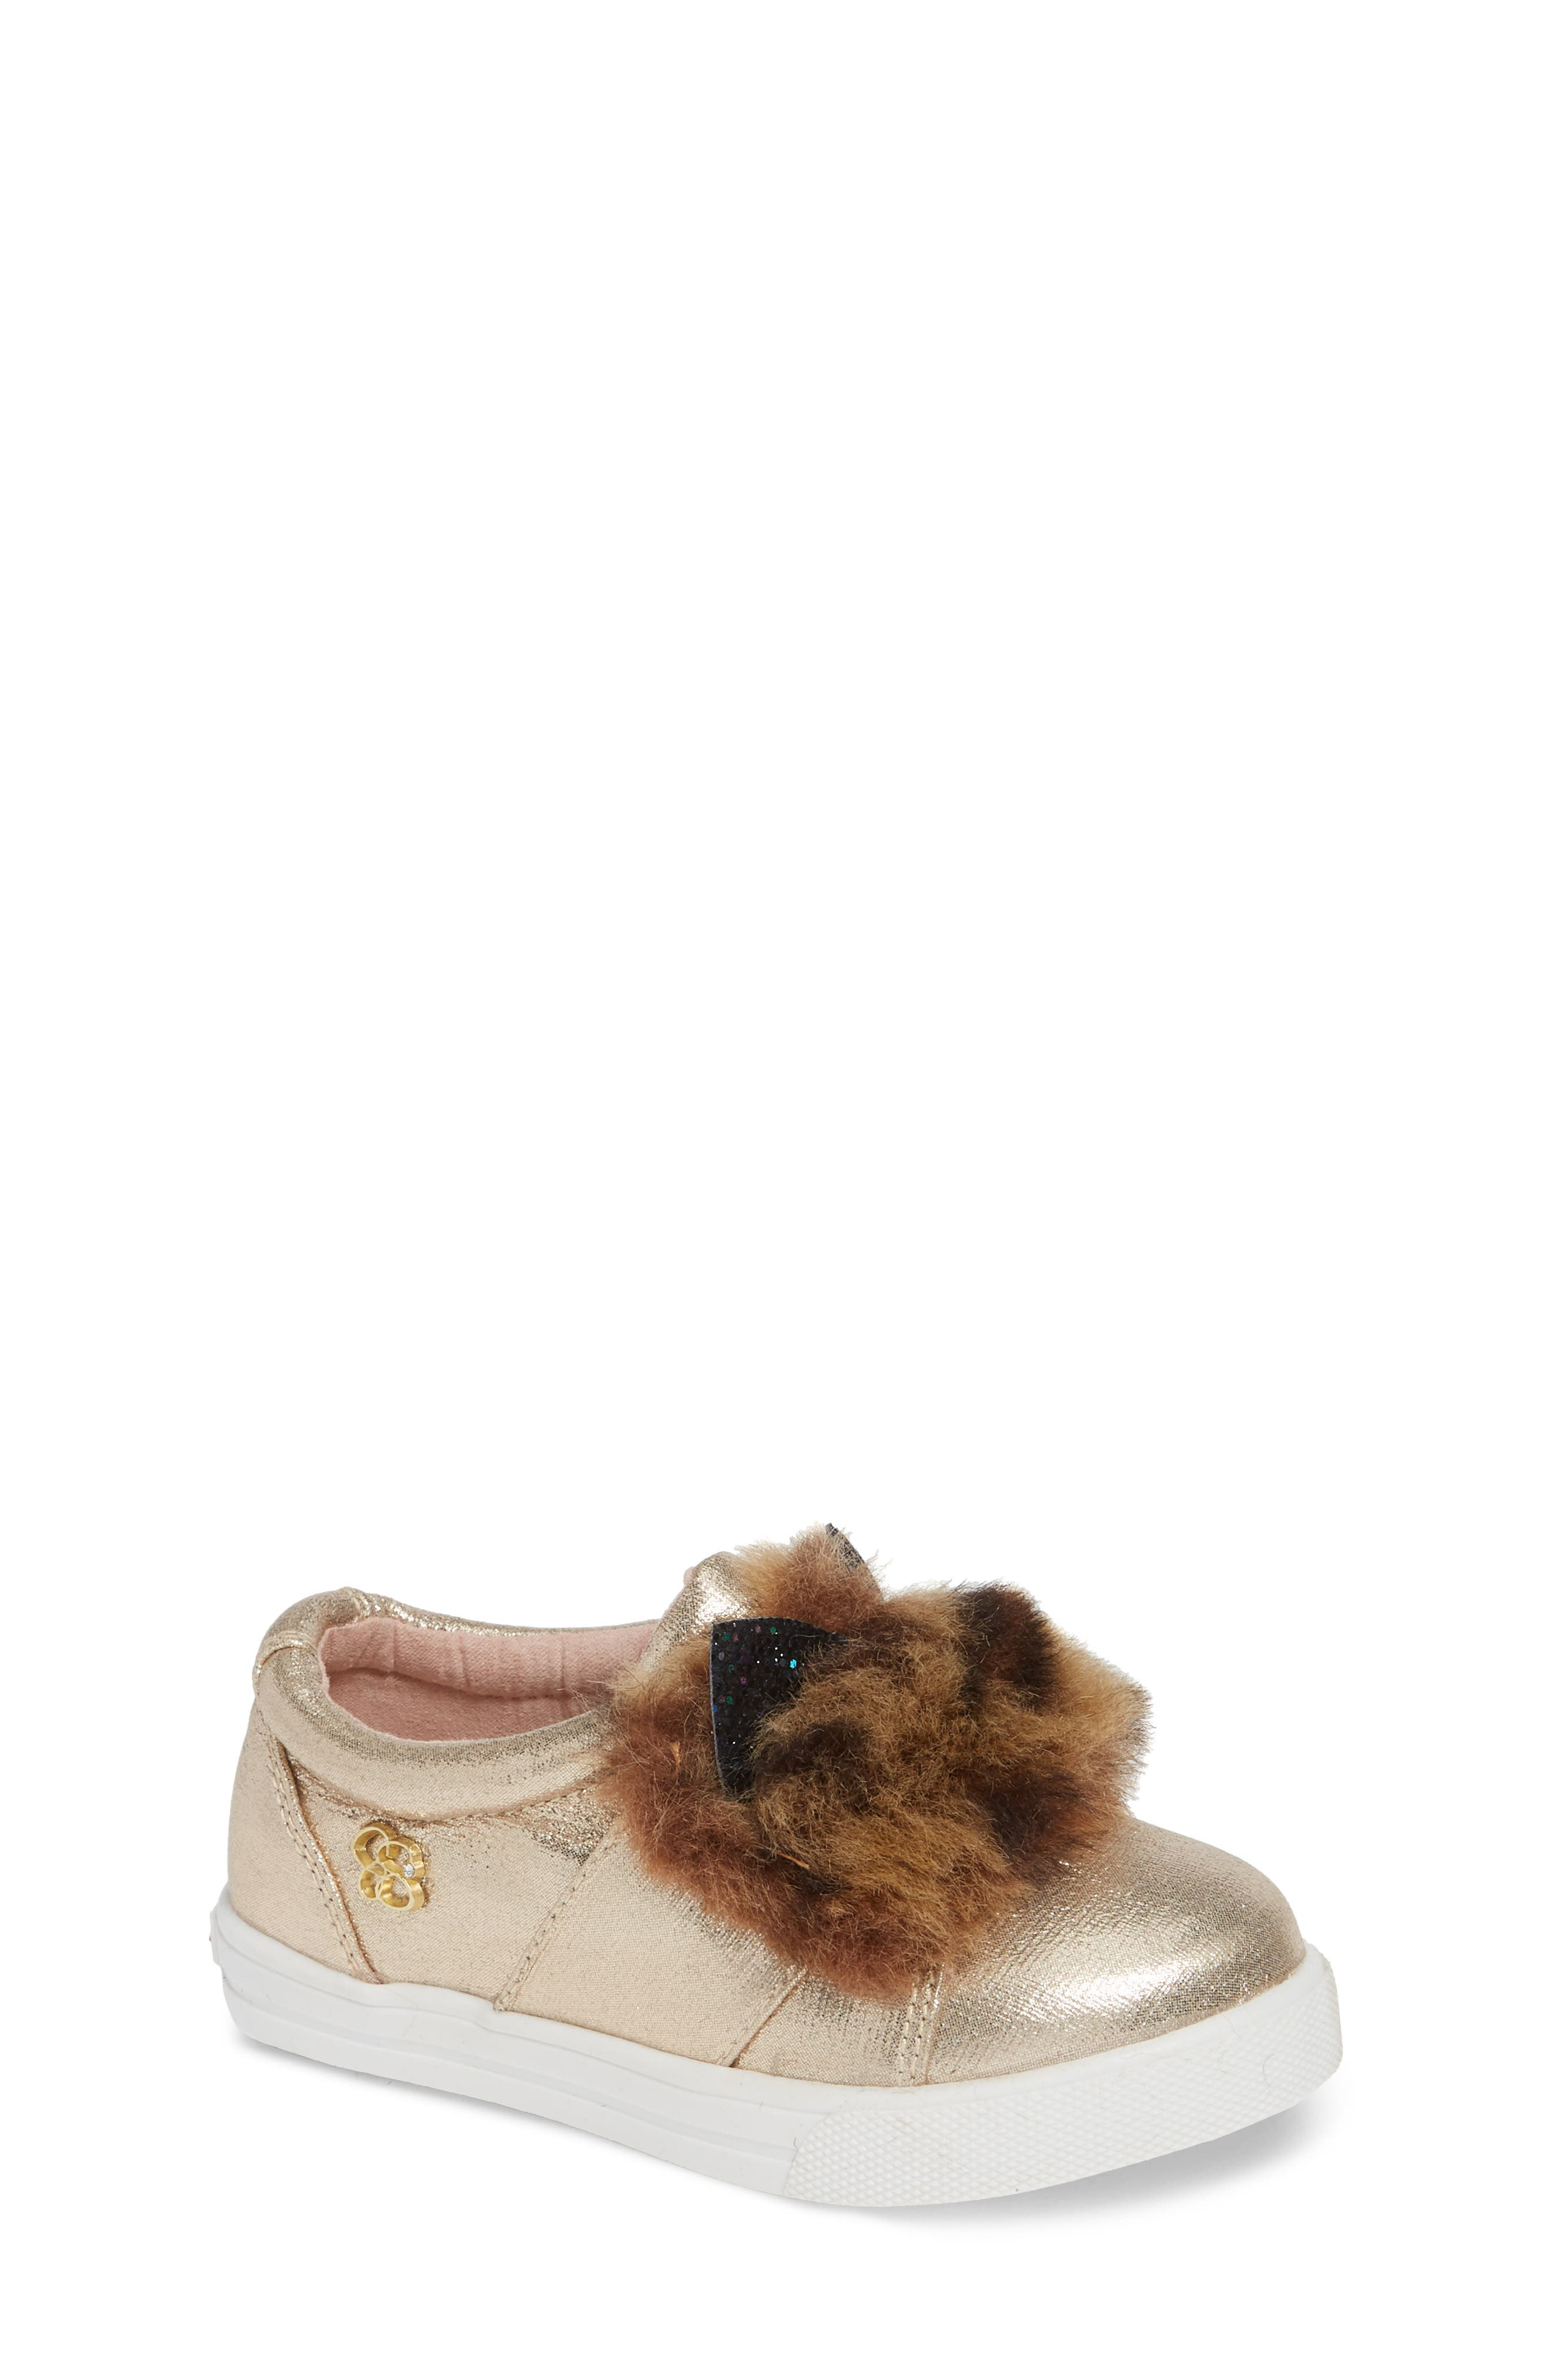 Faux Fur Slip-On Metallic Sneaker,                             Main thumbnail 1, color,                             GOLDEN METALLIC